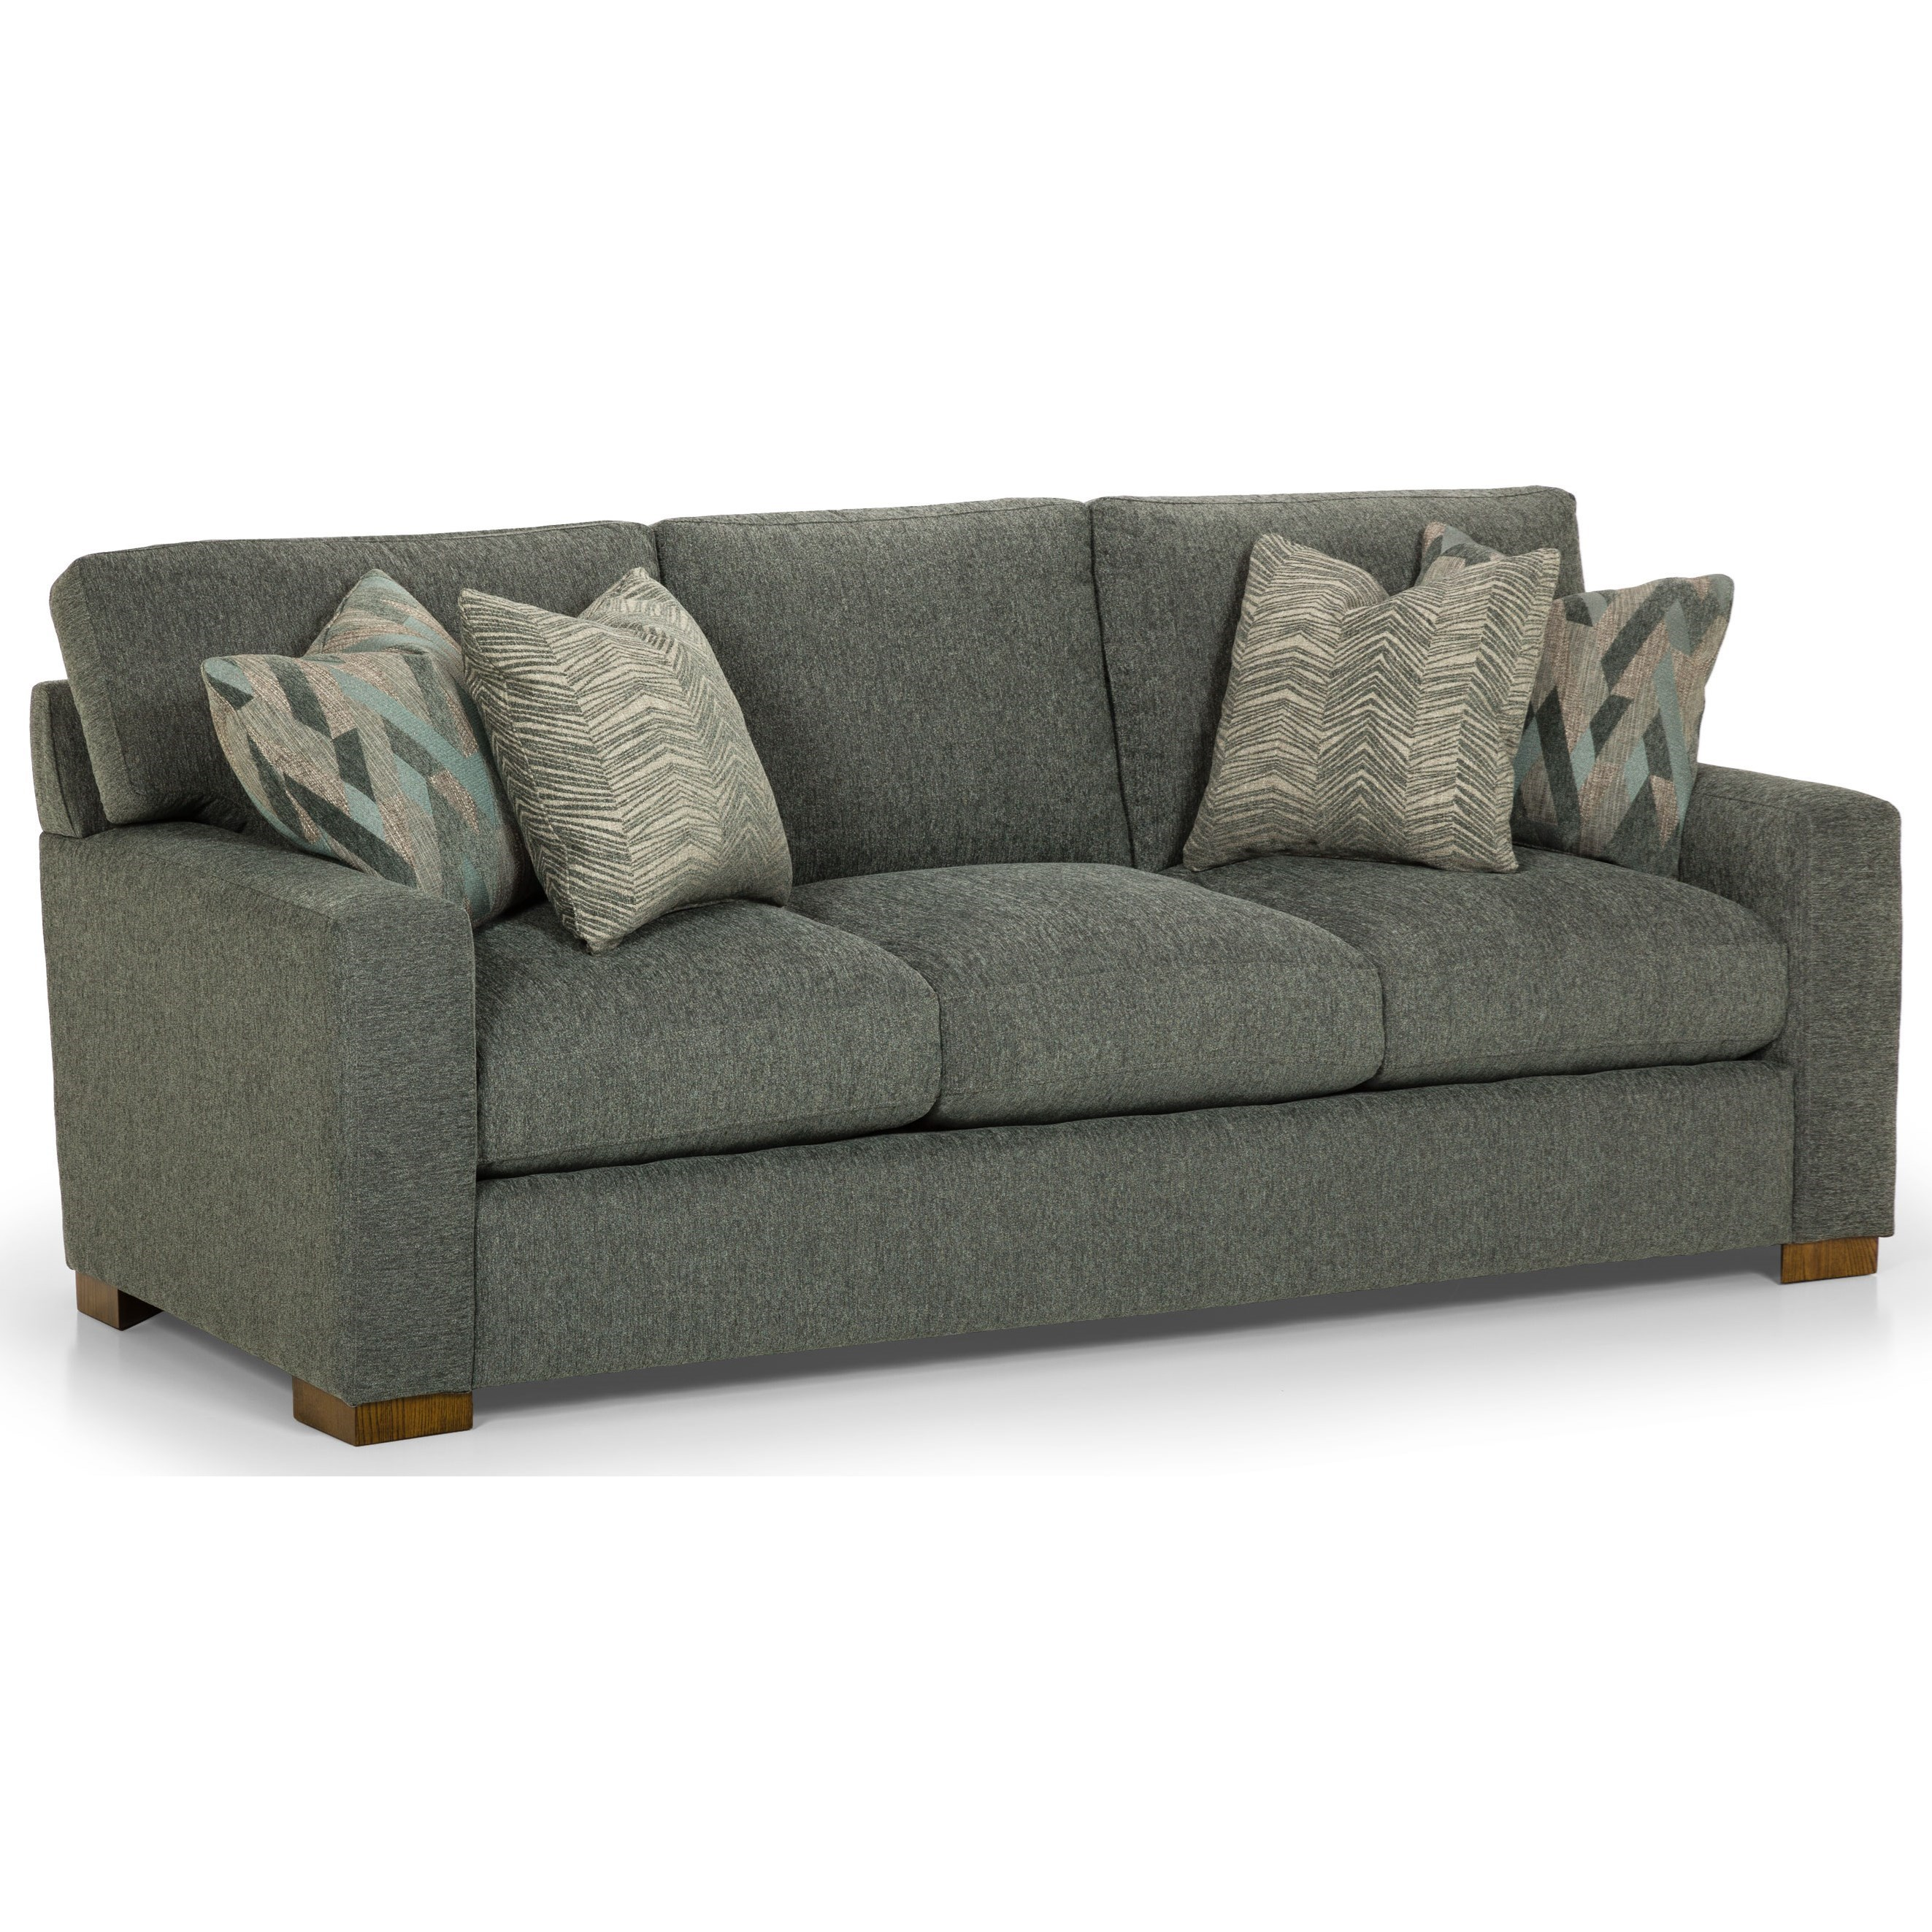 471 Sofa by Stanton at Wilson's Furniture